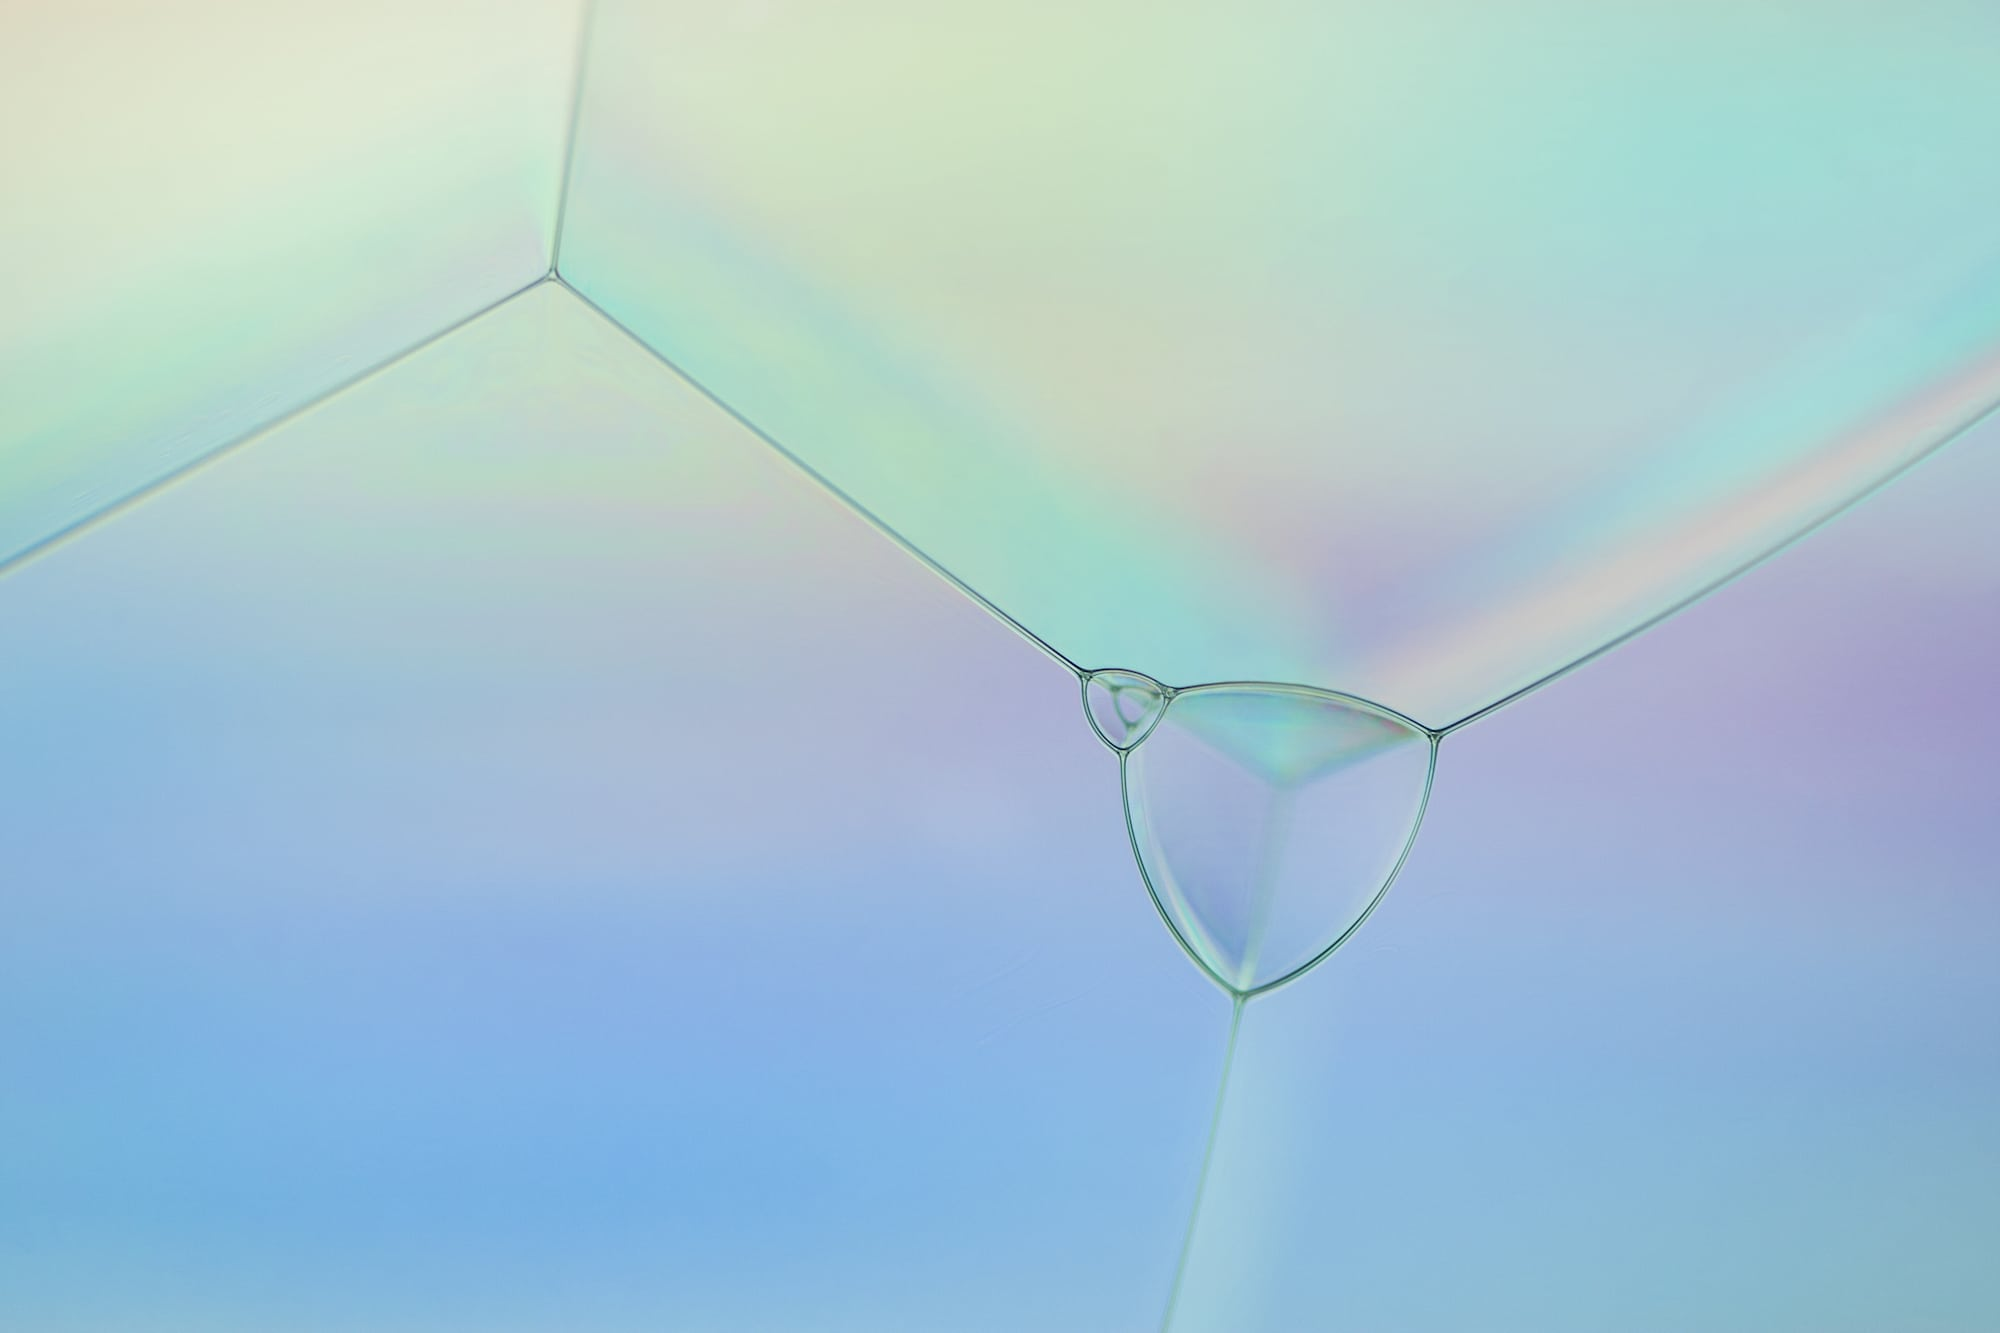 Photography alumna works with bubbles for art and science